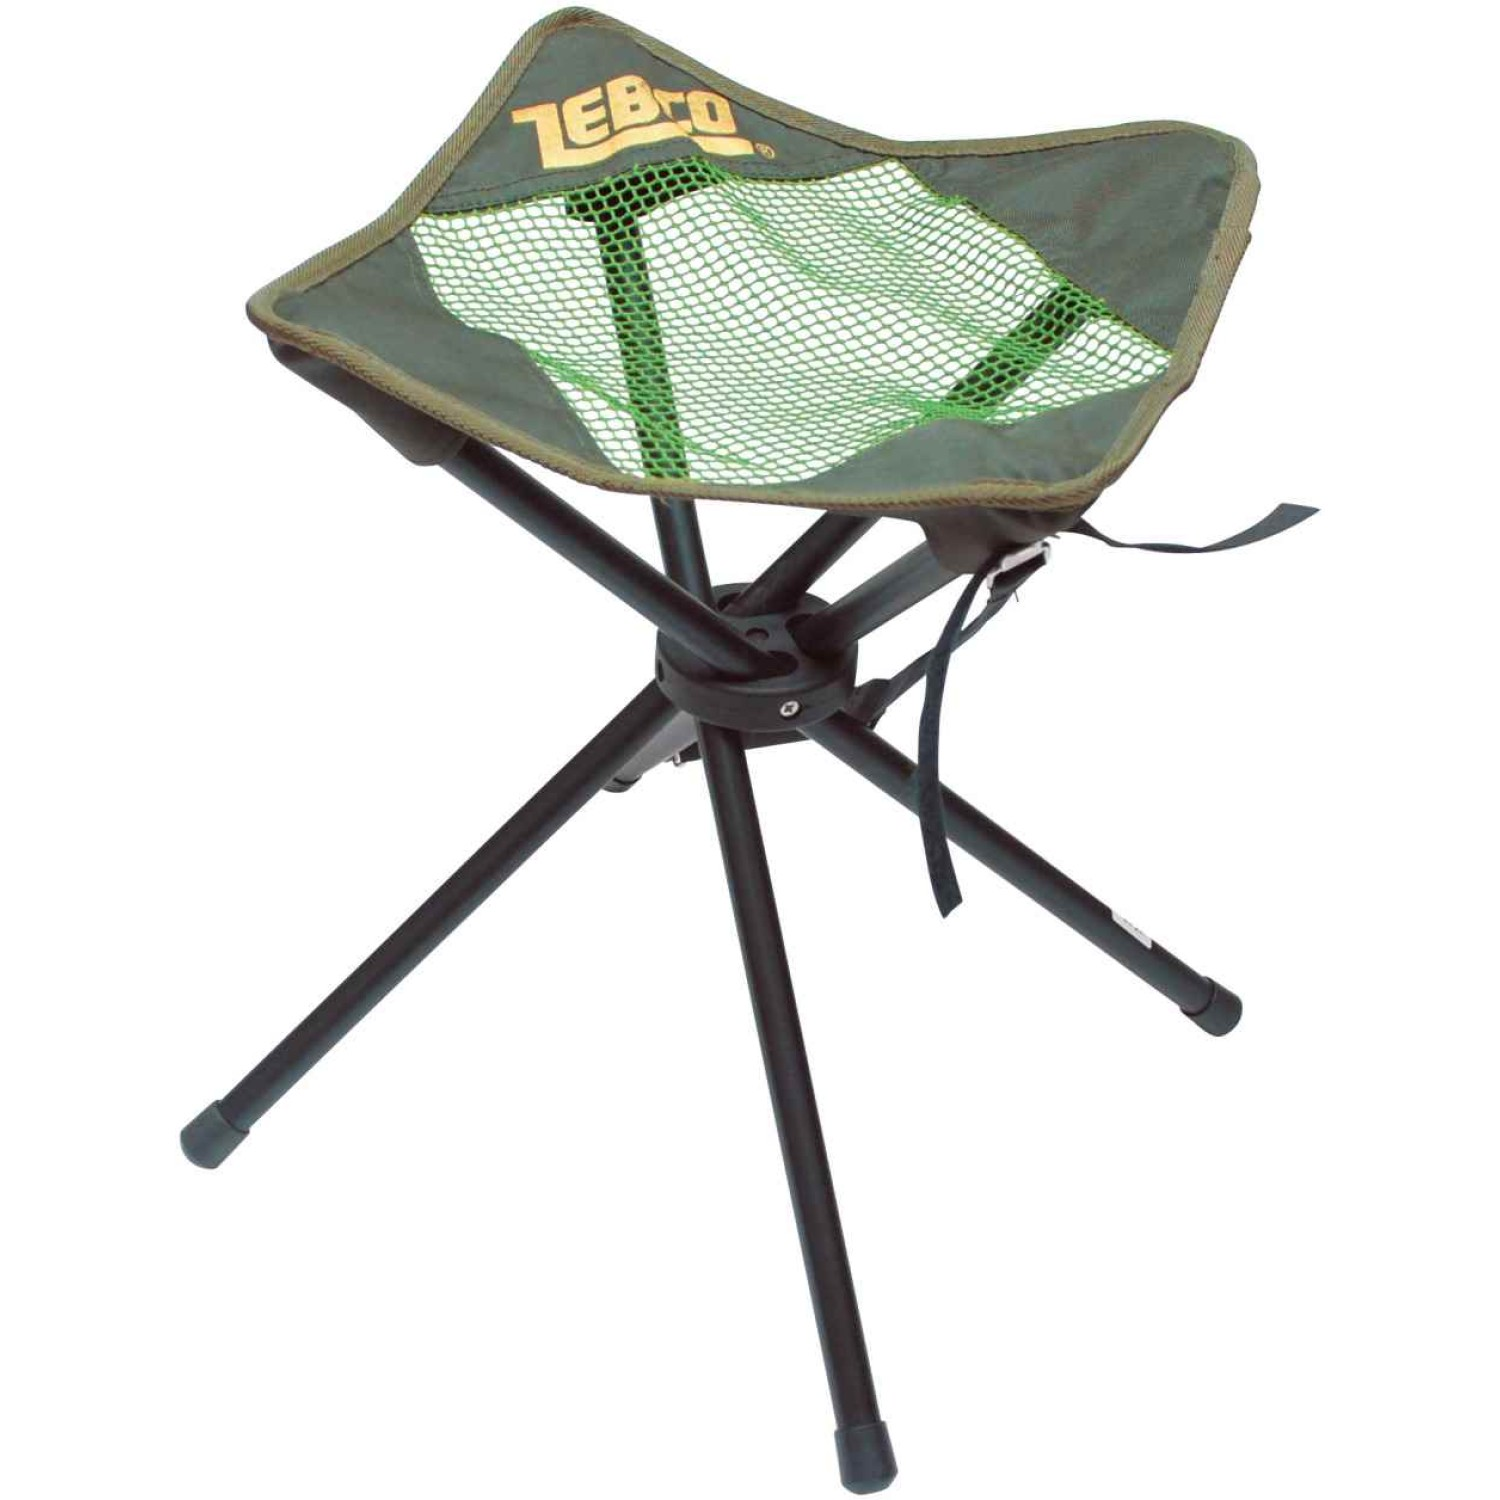 Zebco Holiday Chair